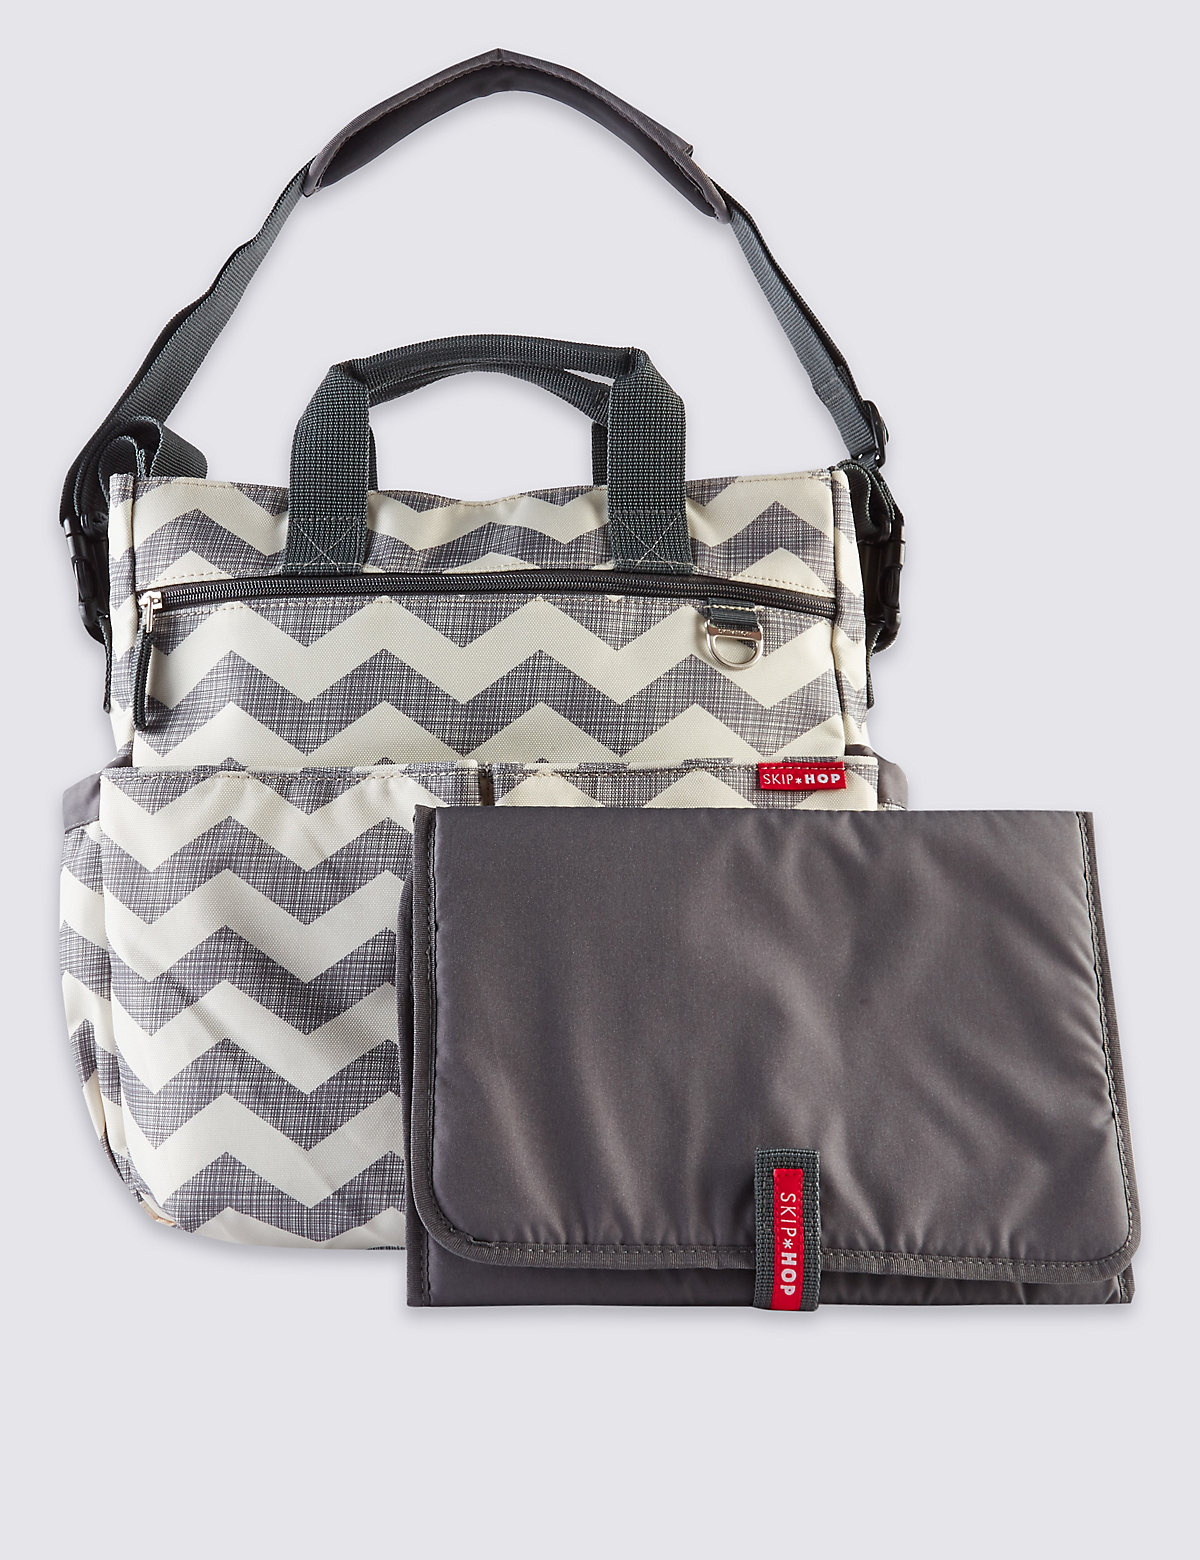 Skip Hop Duo Signature Chevron Changing Bag